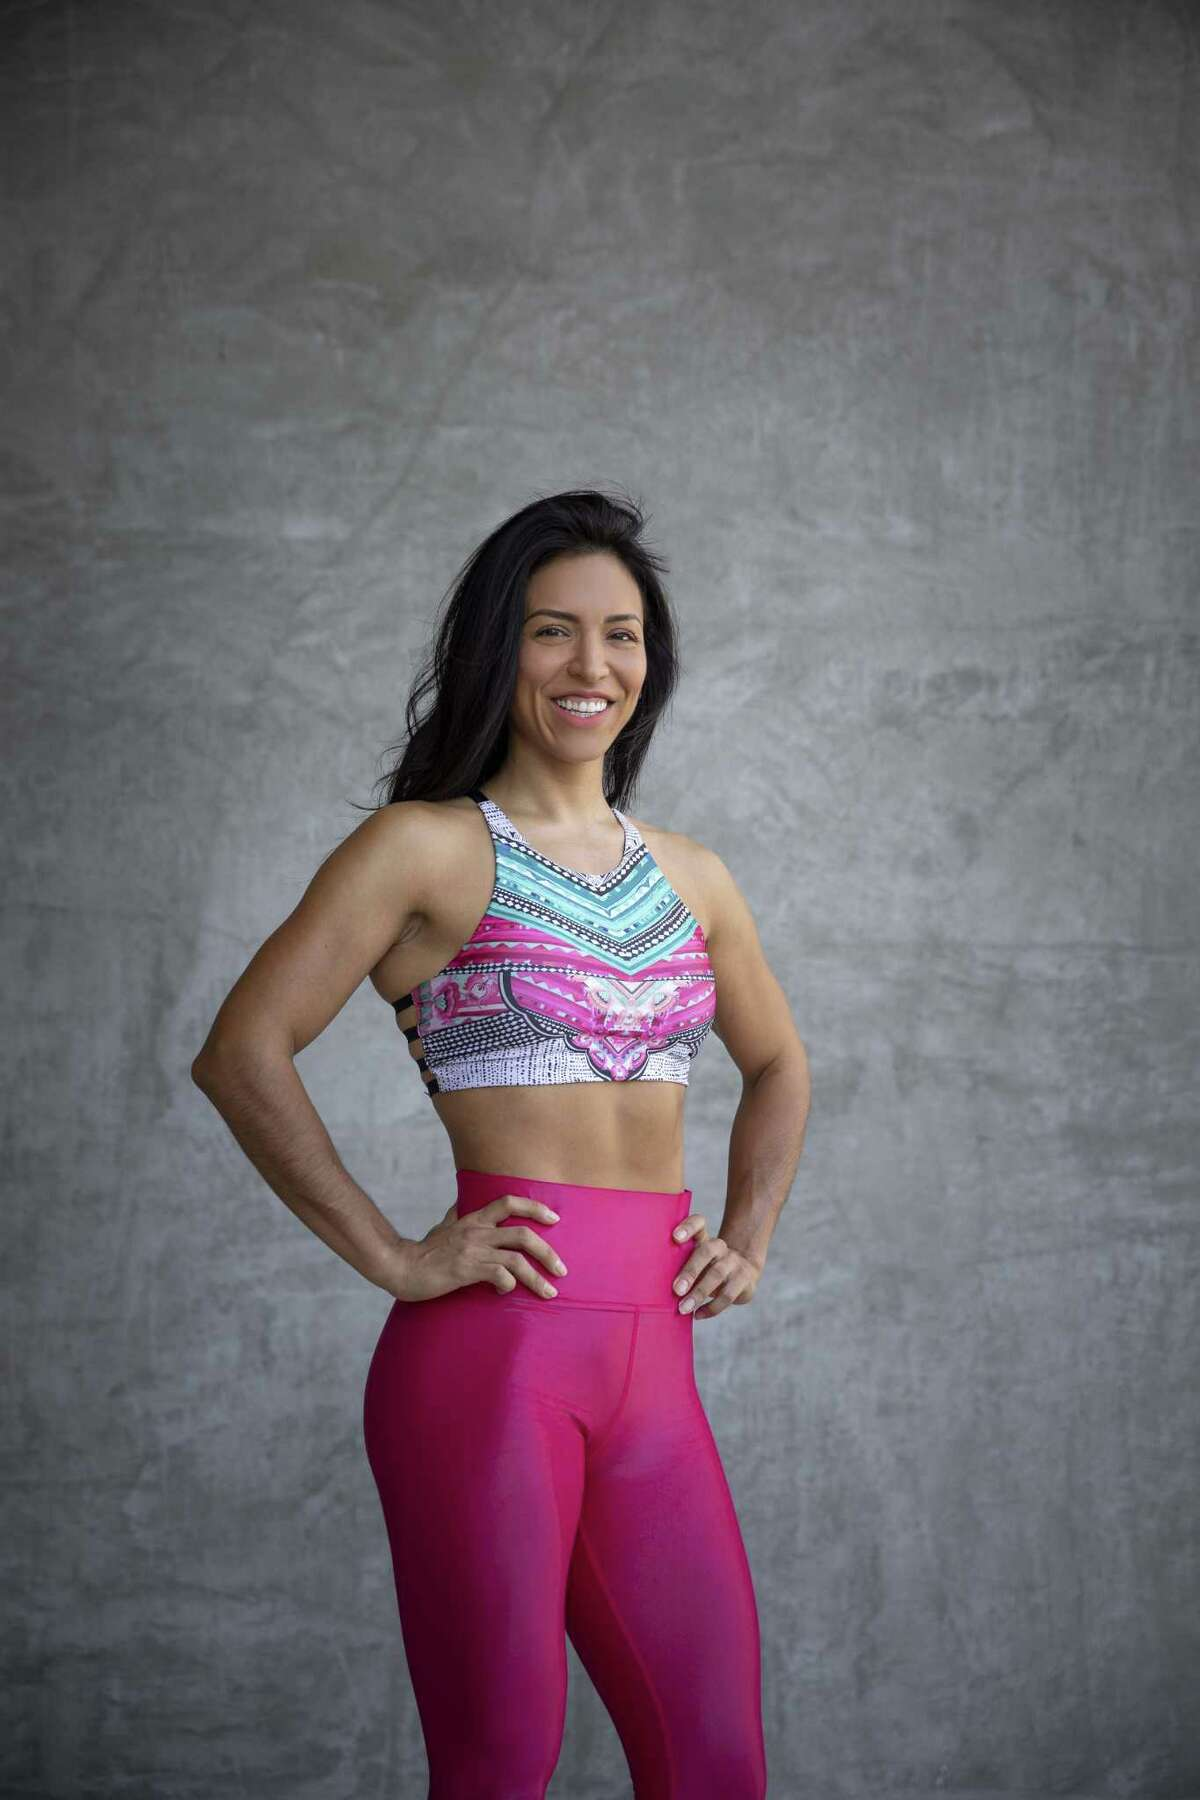 Fitness trainer Carmen Morgan offers simple, easy-to-follow exercise videos, has a cute rescue dog named Joey who often stars in her posts and she starts off each video by dancing.